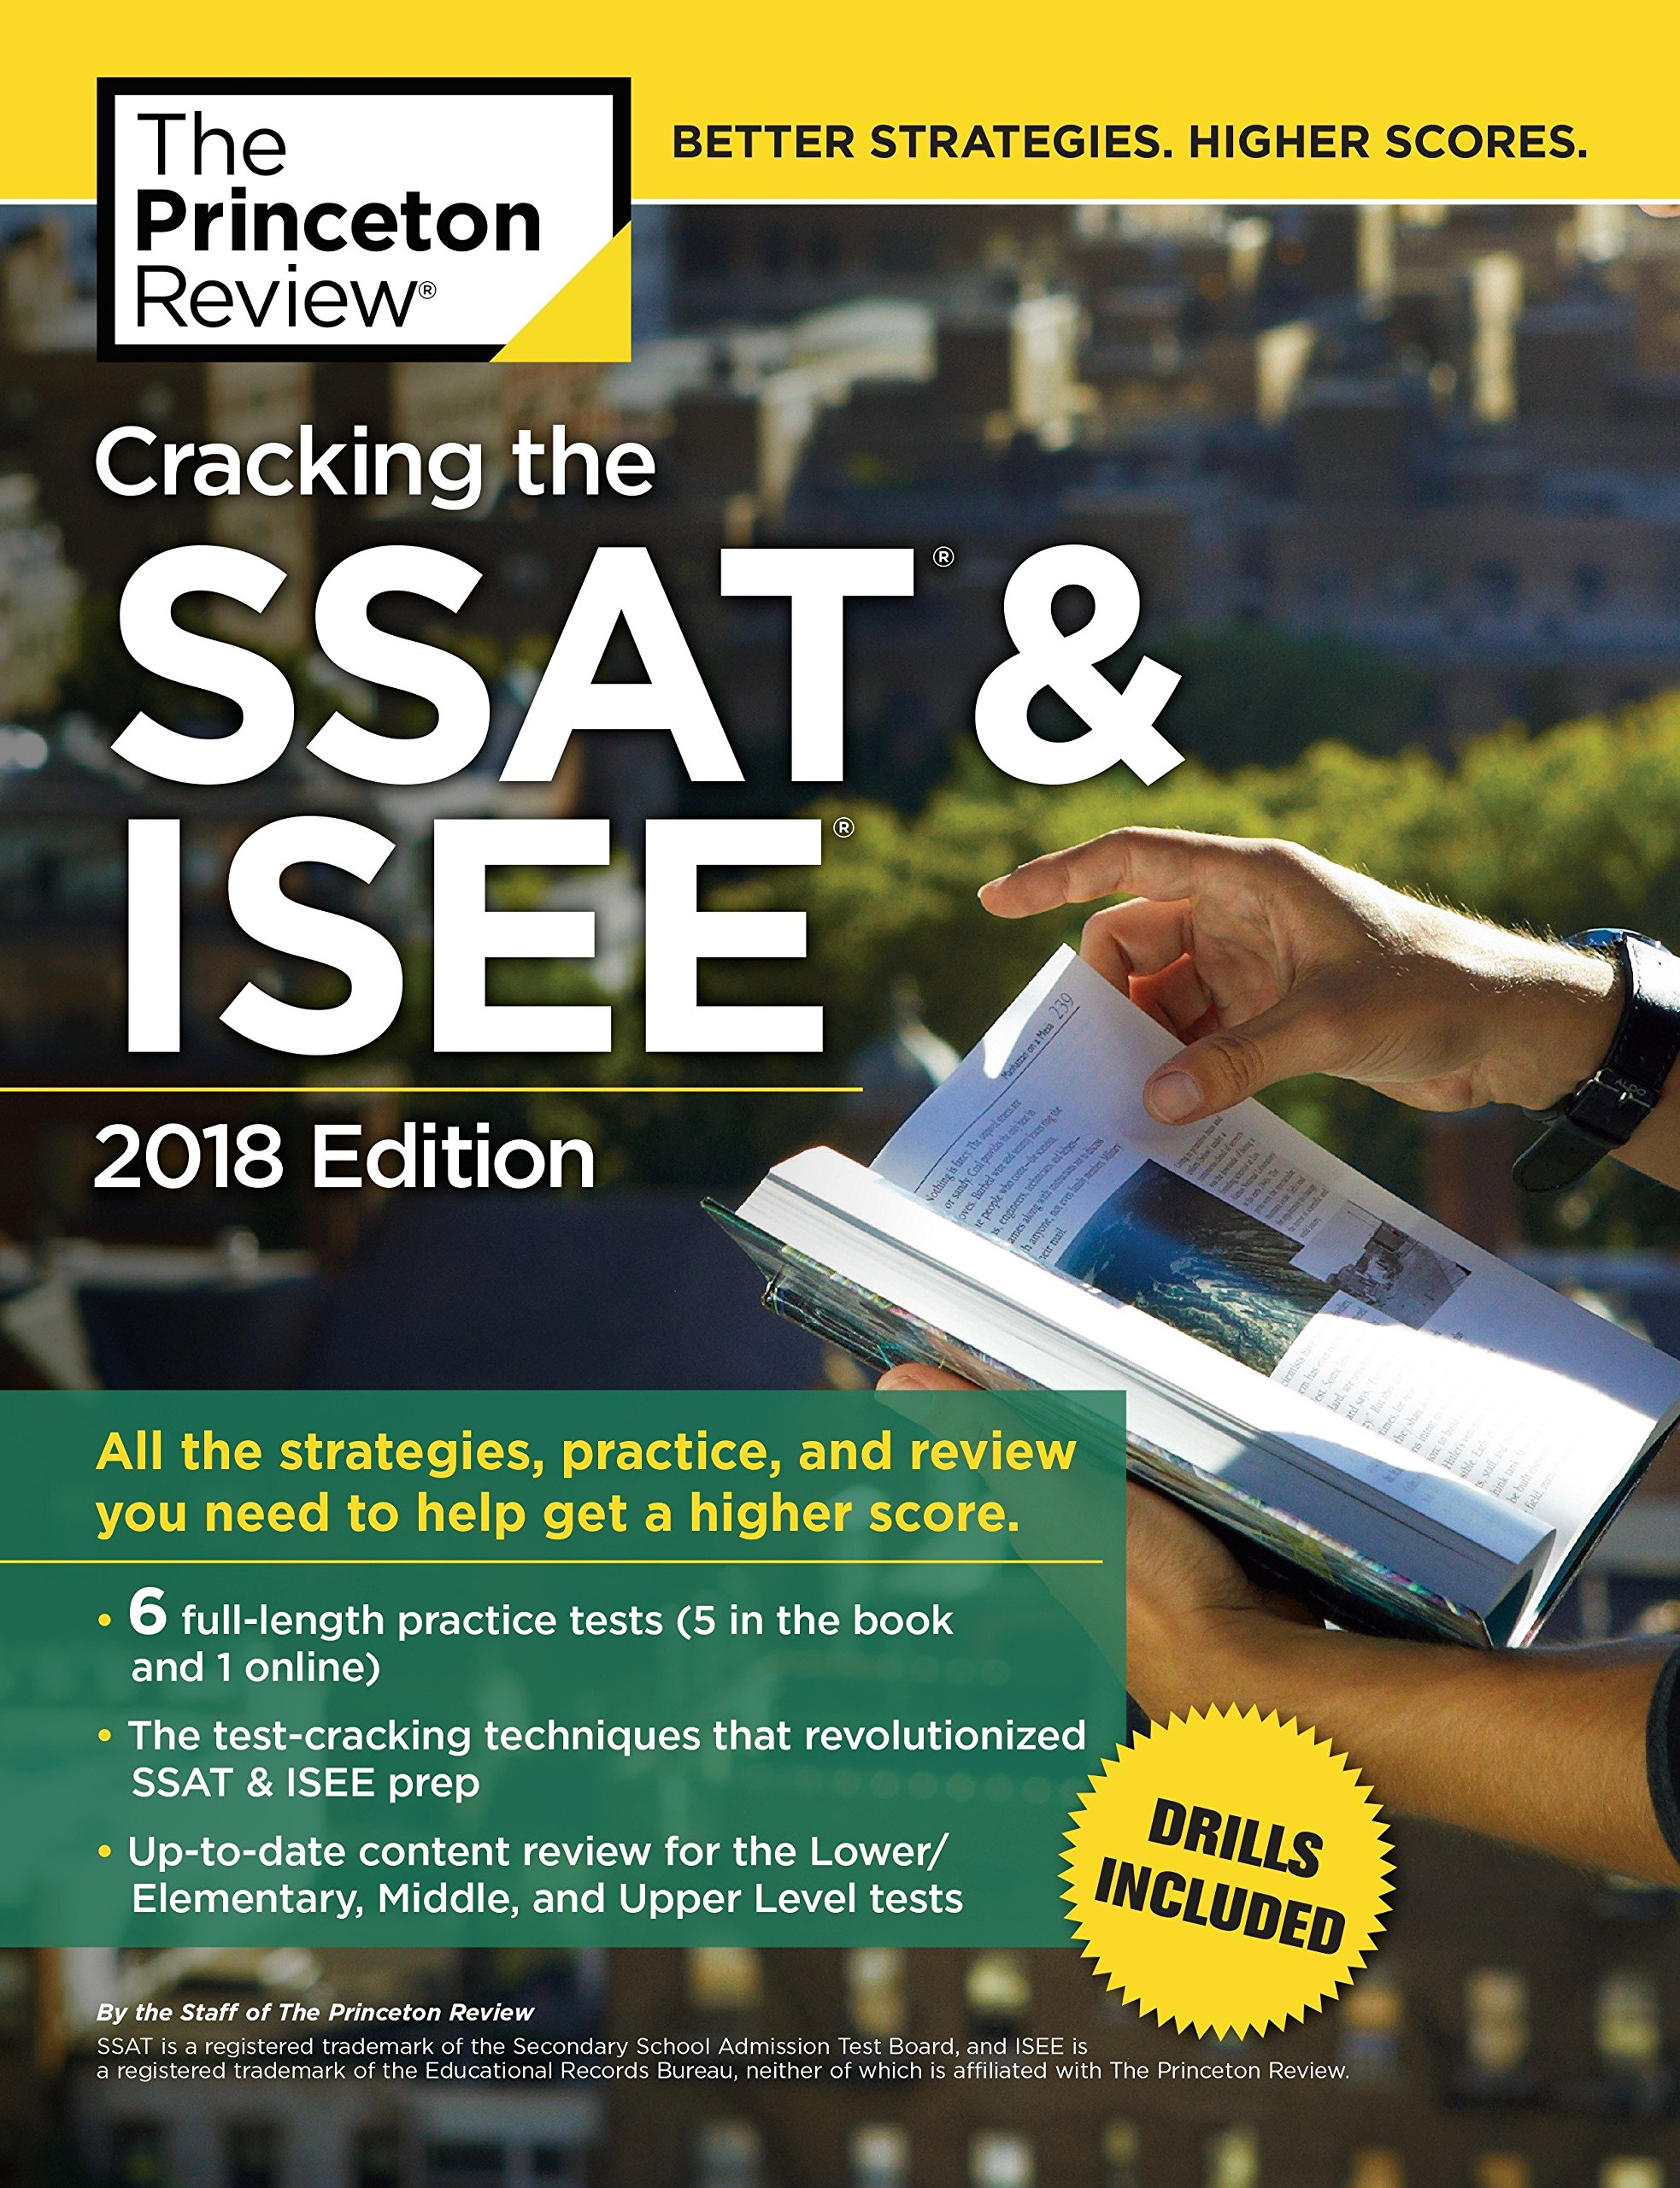 Cracking The SSAT And ISEE 2018 Edition  All The Strategies Practice And Review You Need To Help Get A Higher Score  Private Test Preparation